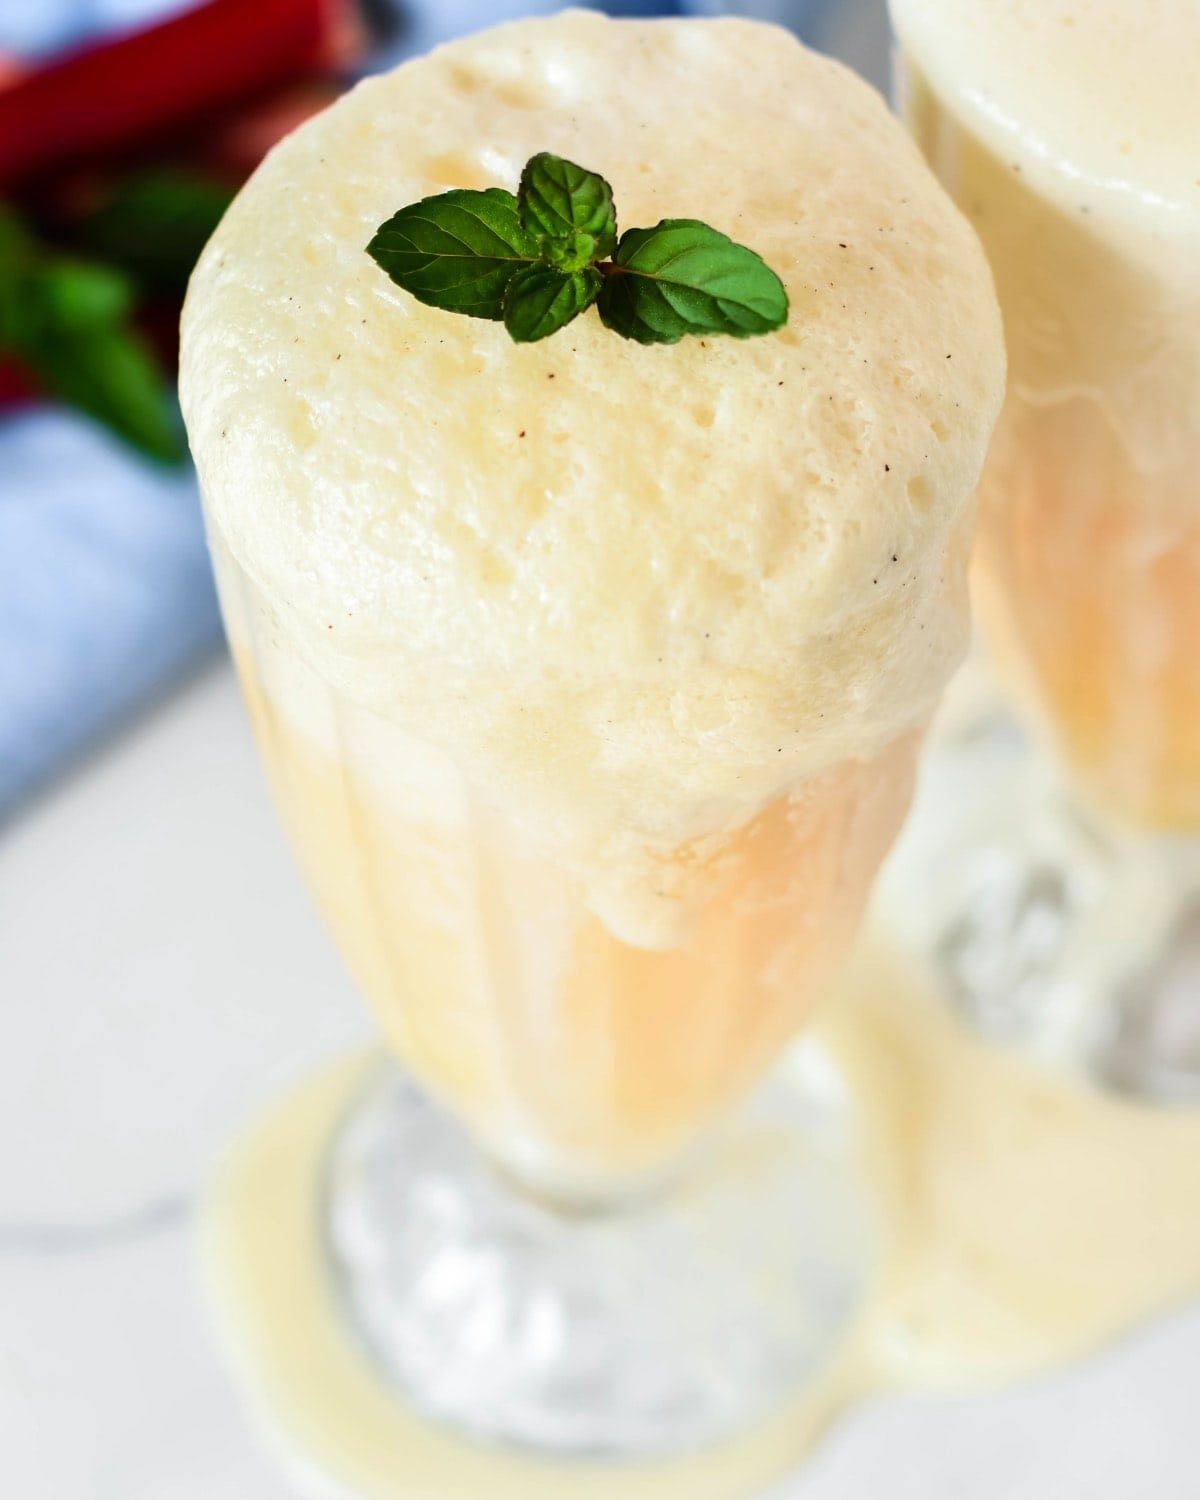 Boozy Elderflower Liqueur, fresh orange juice and ice cream! These boozy rhubarb elderflower ice cream floats are simple and wonderfully satisfying on a hot summer's day.